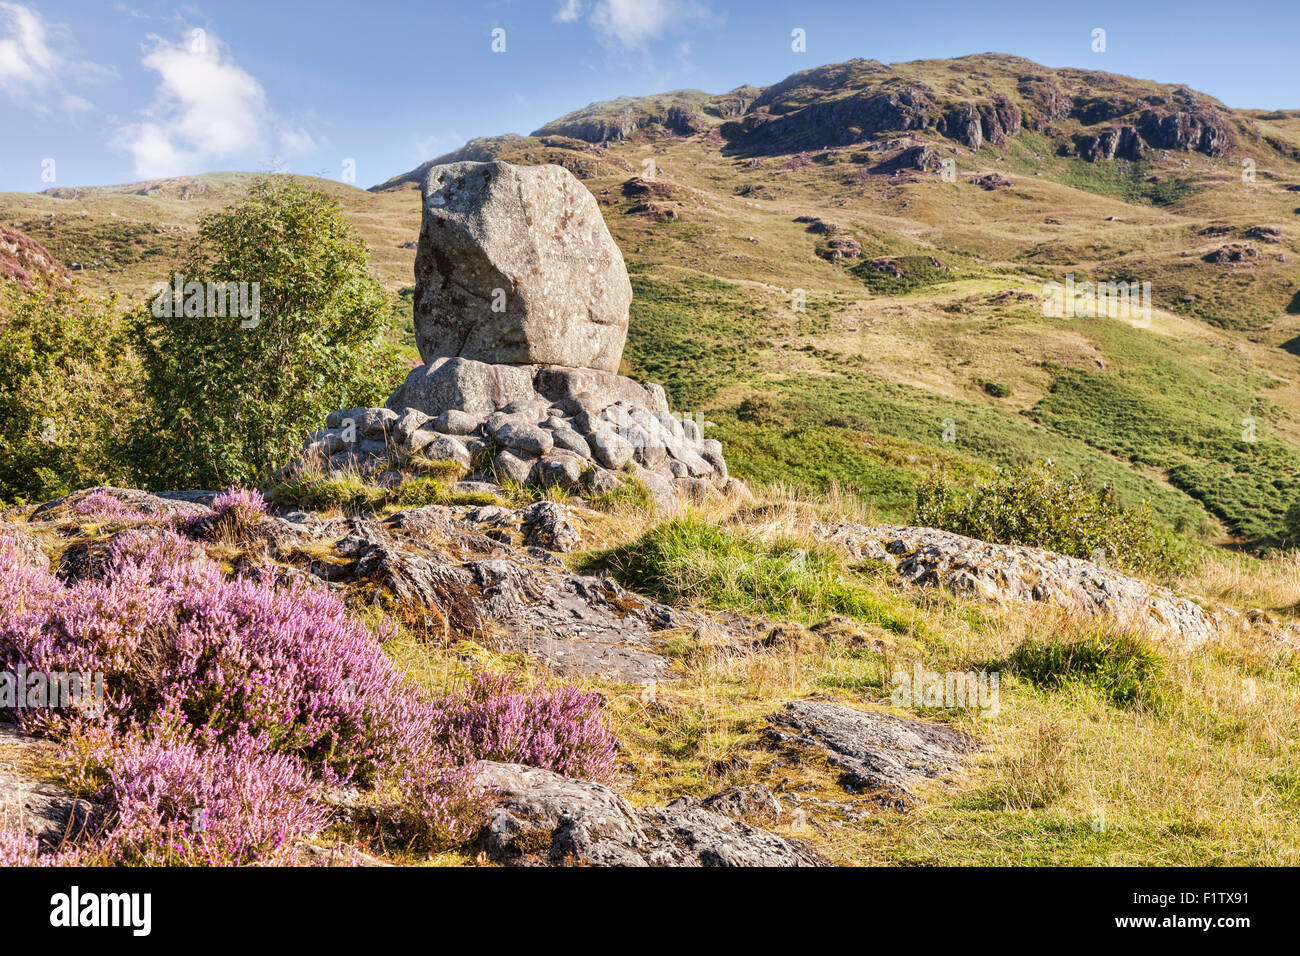 The Bruce Memorial in the Galloway Hills at Glentrool, Dumfries and Galloway, Scotland. - Stock Image